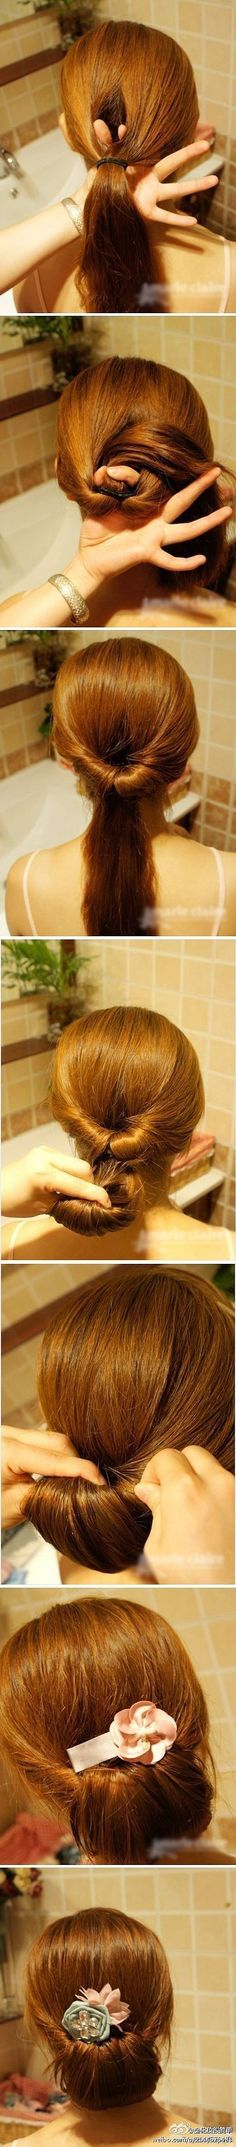 An Updated Chignon - Lazy Hair Day Up Hairstyles, Pretty Hairstyles, Simple Elegant Hairstyles, Easy Wedding Guest Hairstyles, Hairstyle Wedding, Creative Hairstyles, Diy Hair For Wedding Guest, Hair Updos For Weddings Guest, Classic Updo Hairstyles